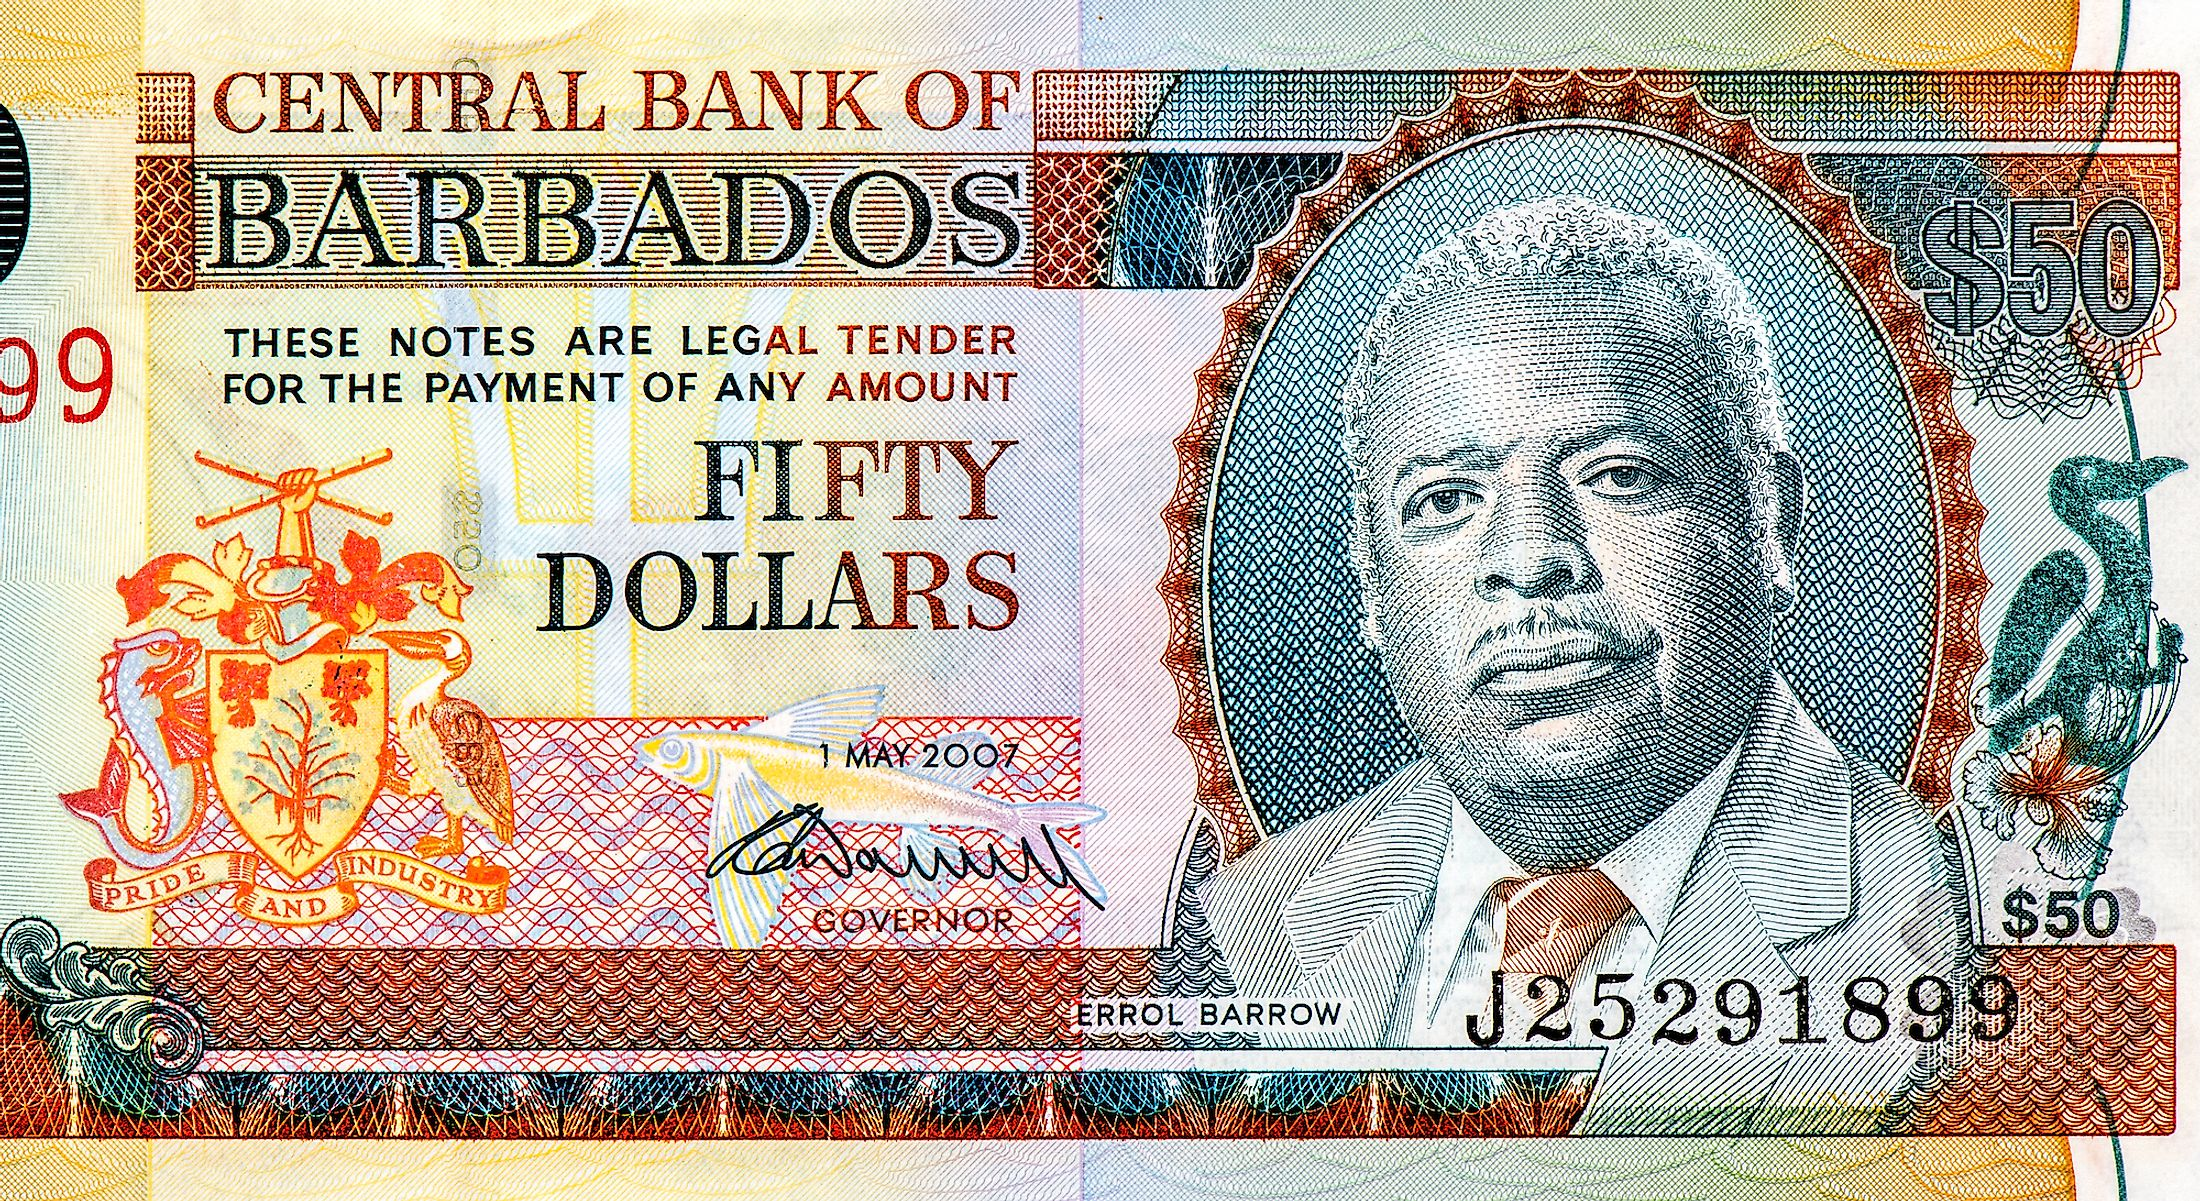 A Barbadian banknote.